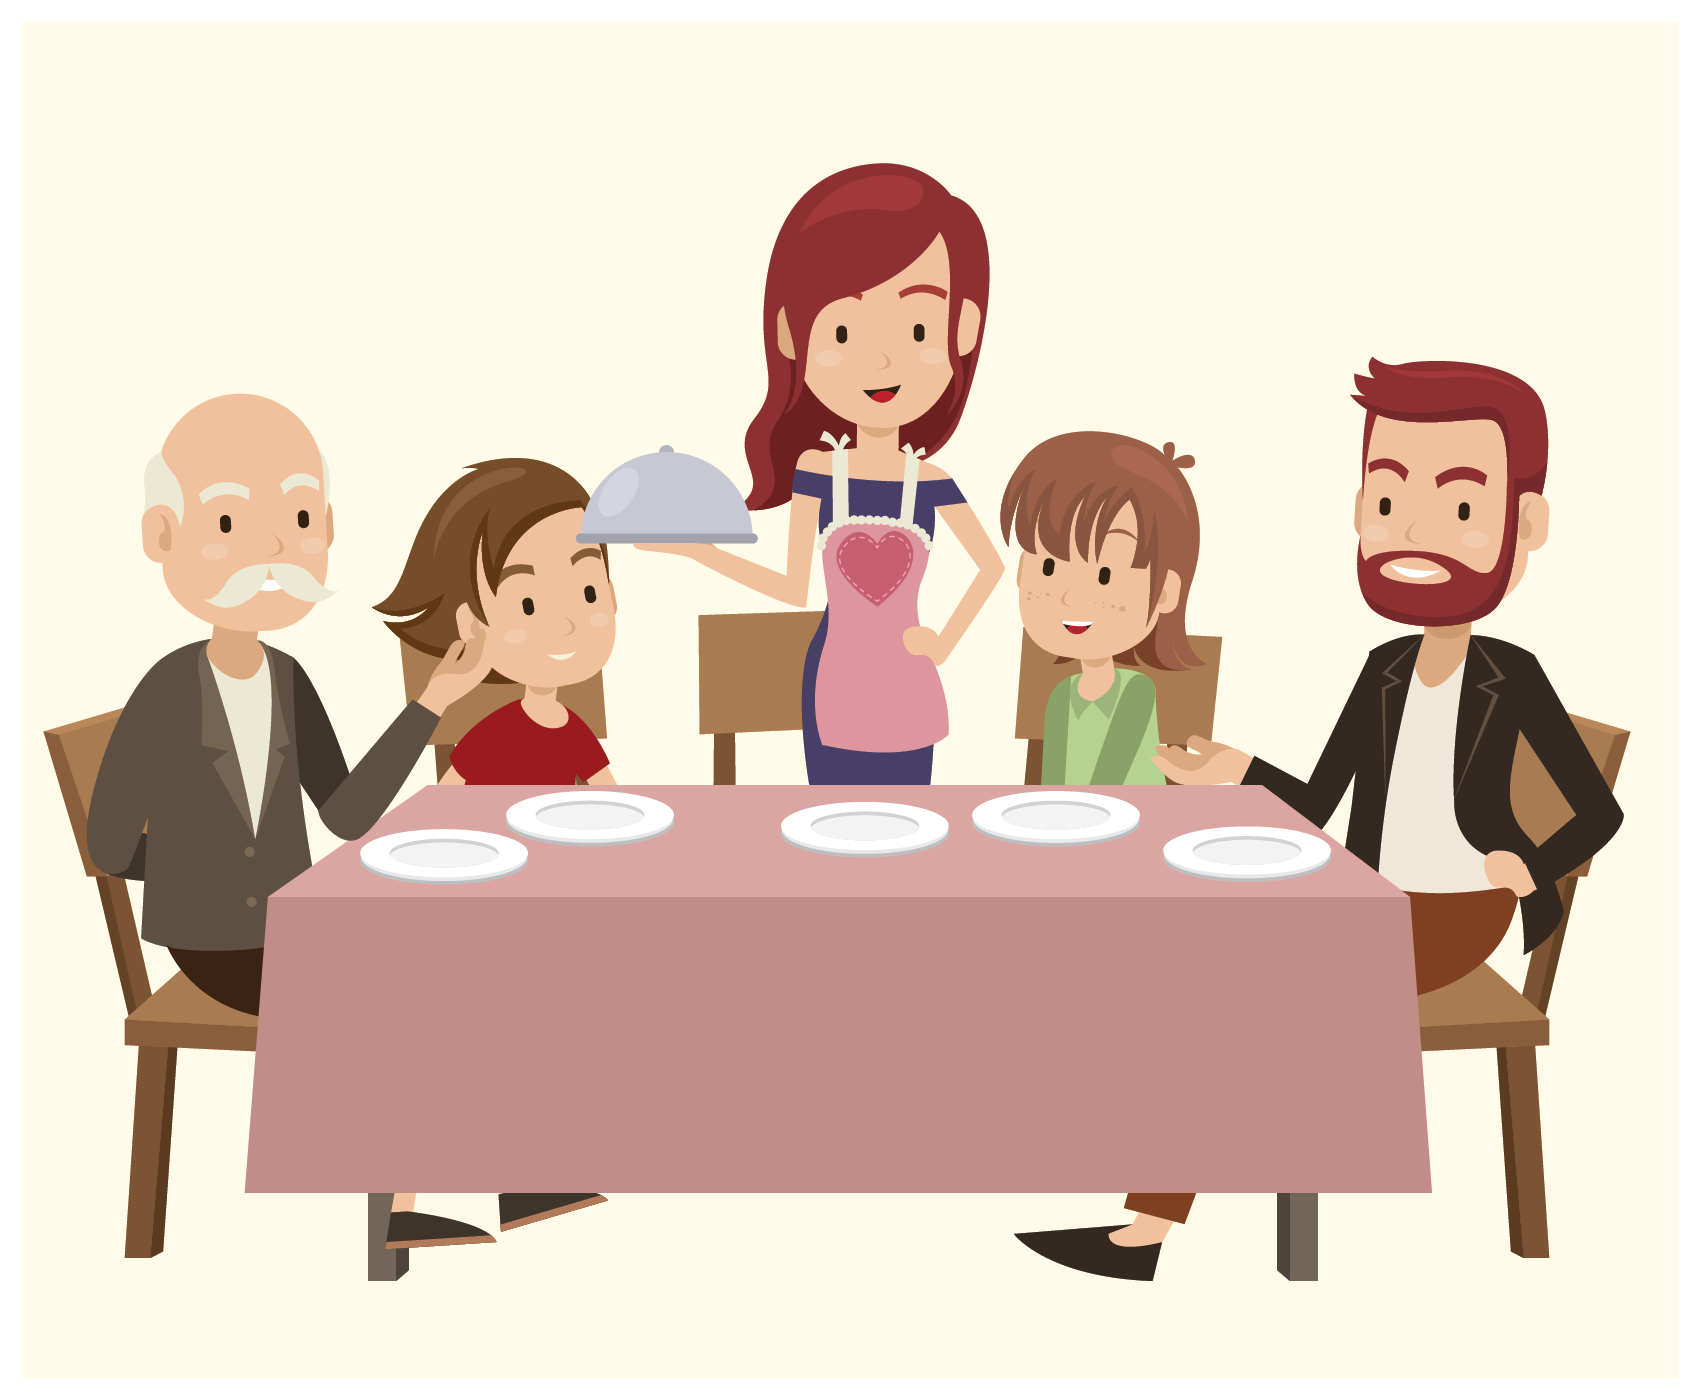 Family Dinner Table Conversation - how's it going?